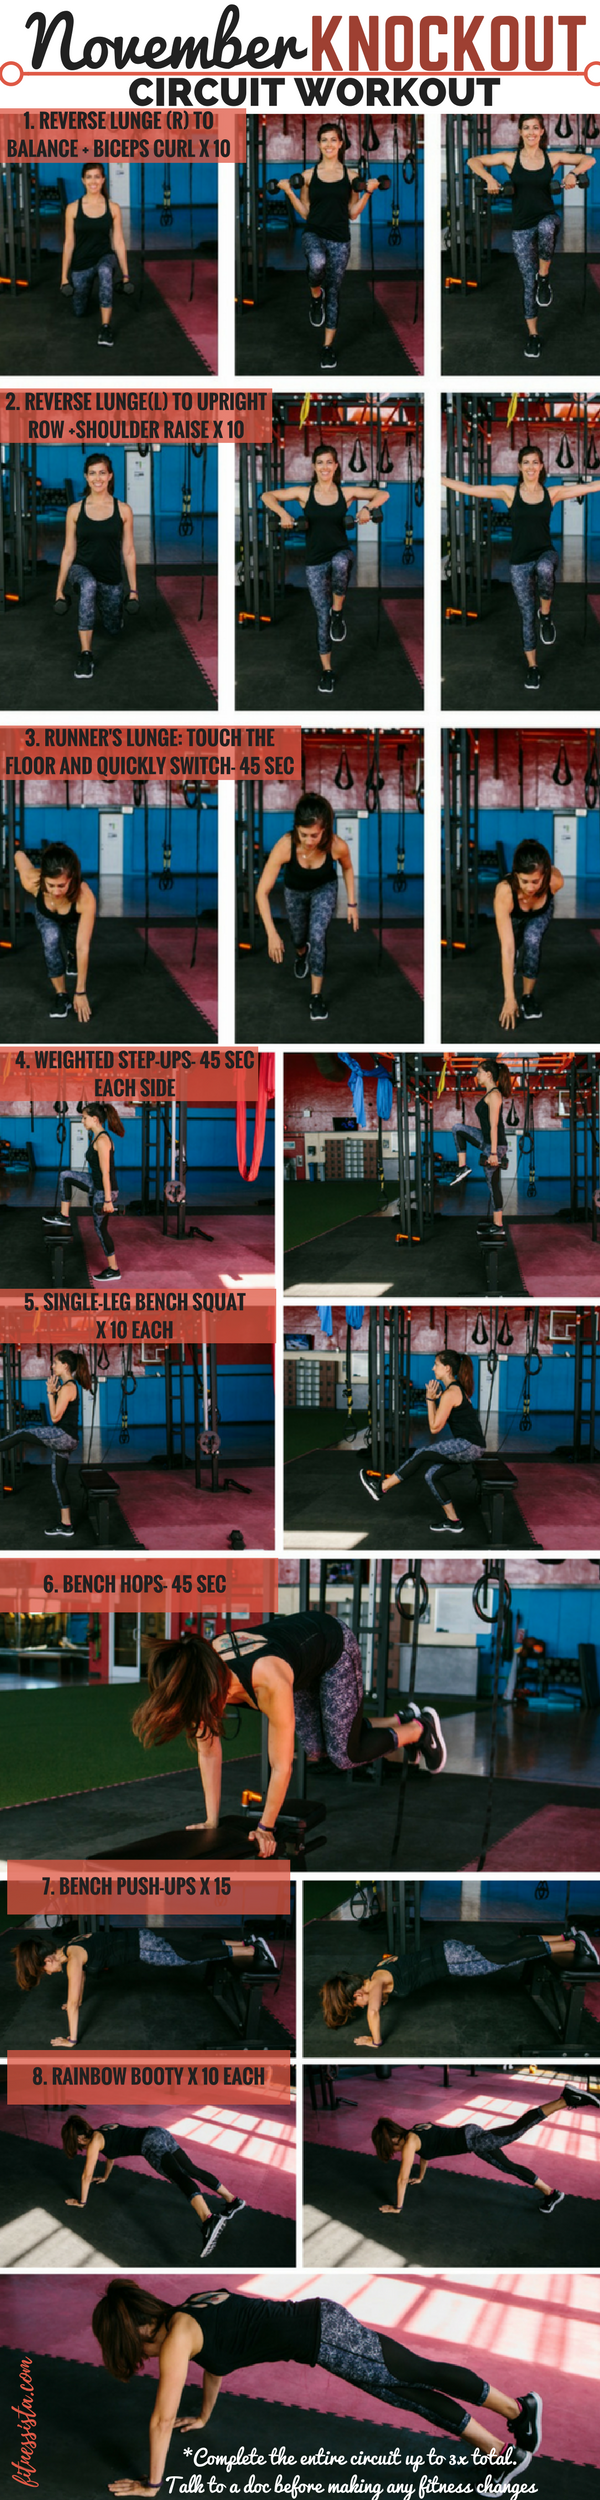 November Knockout Circuit Workout